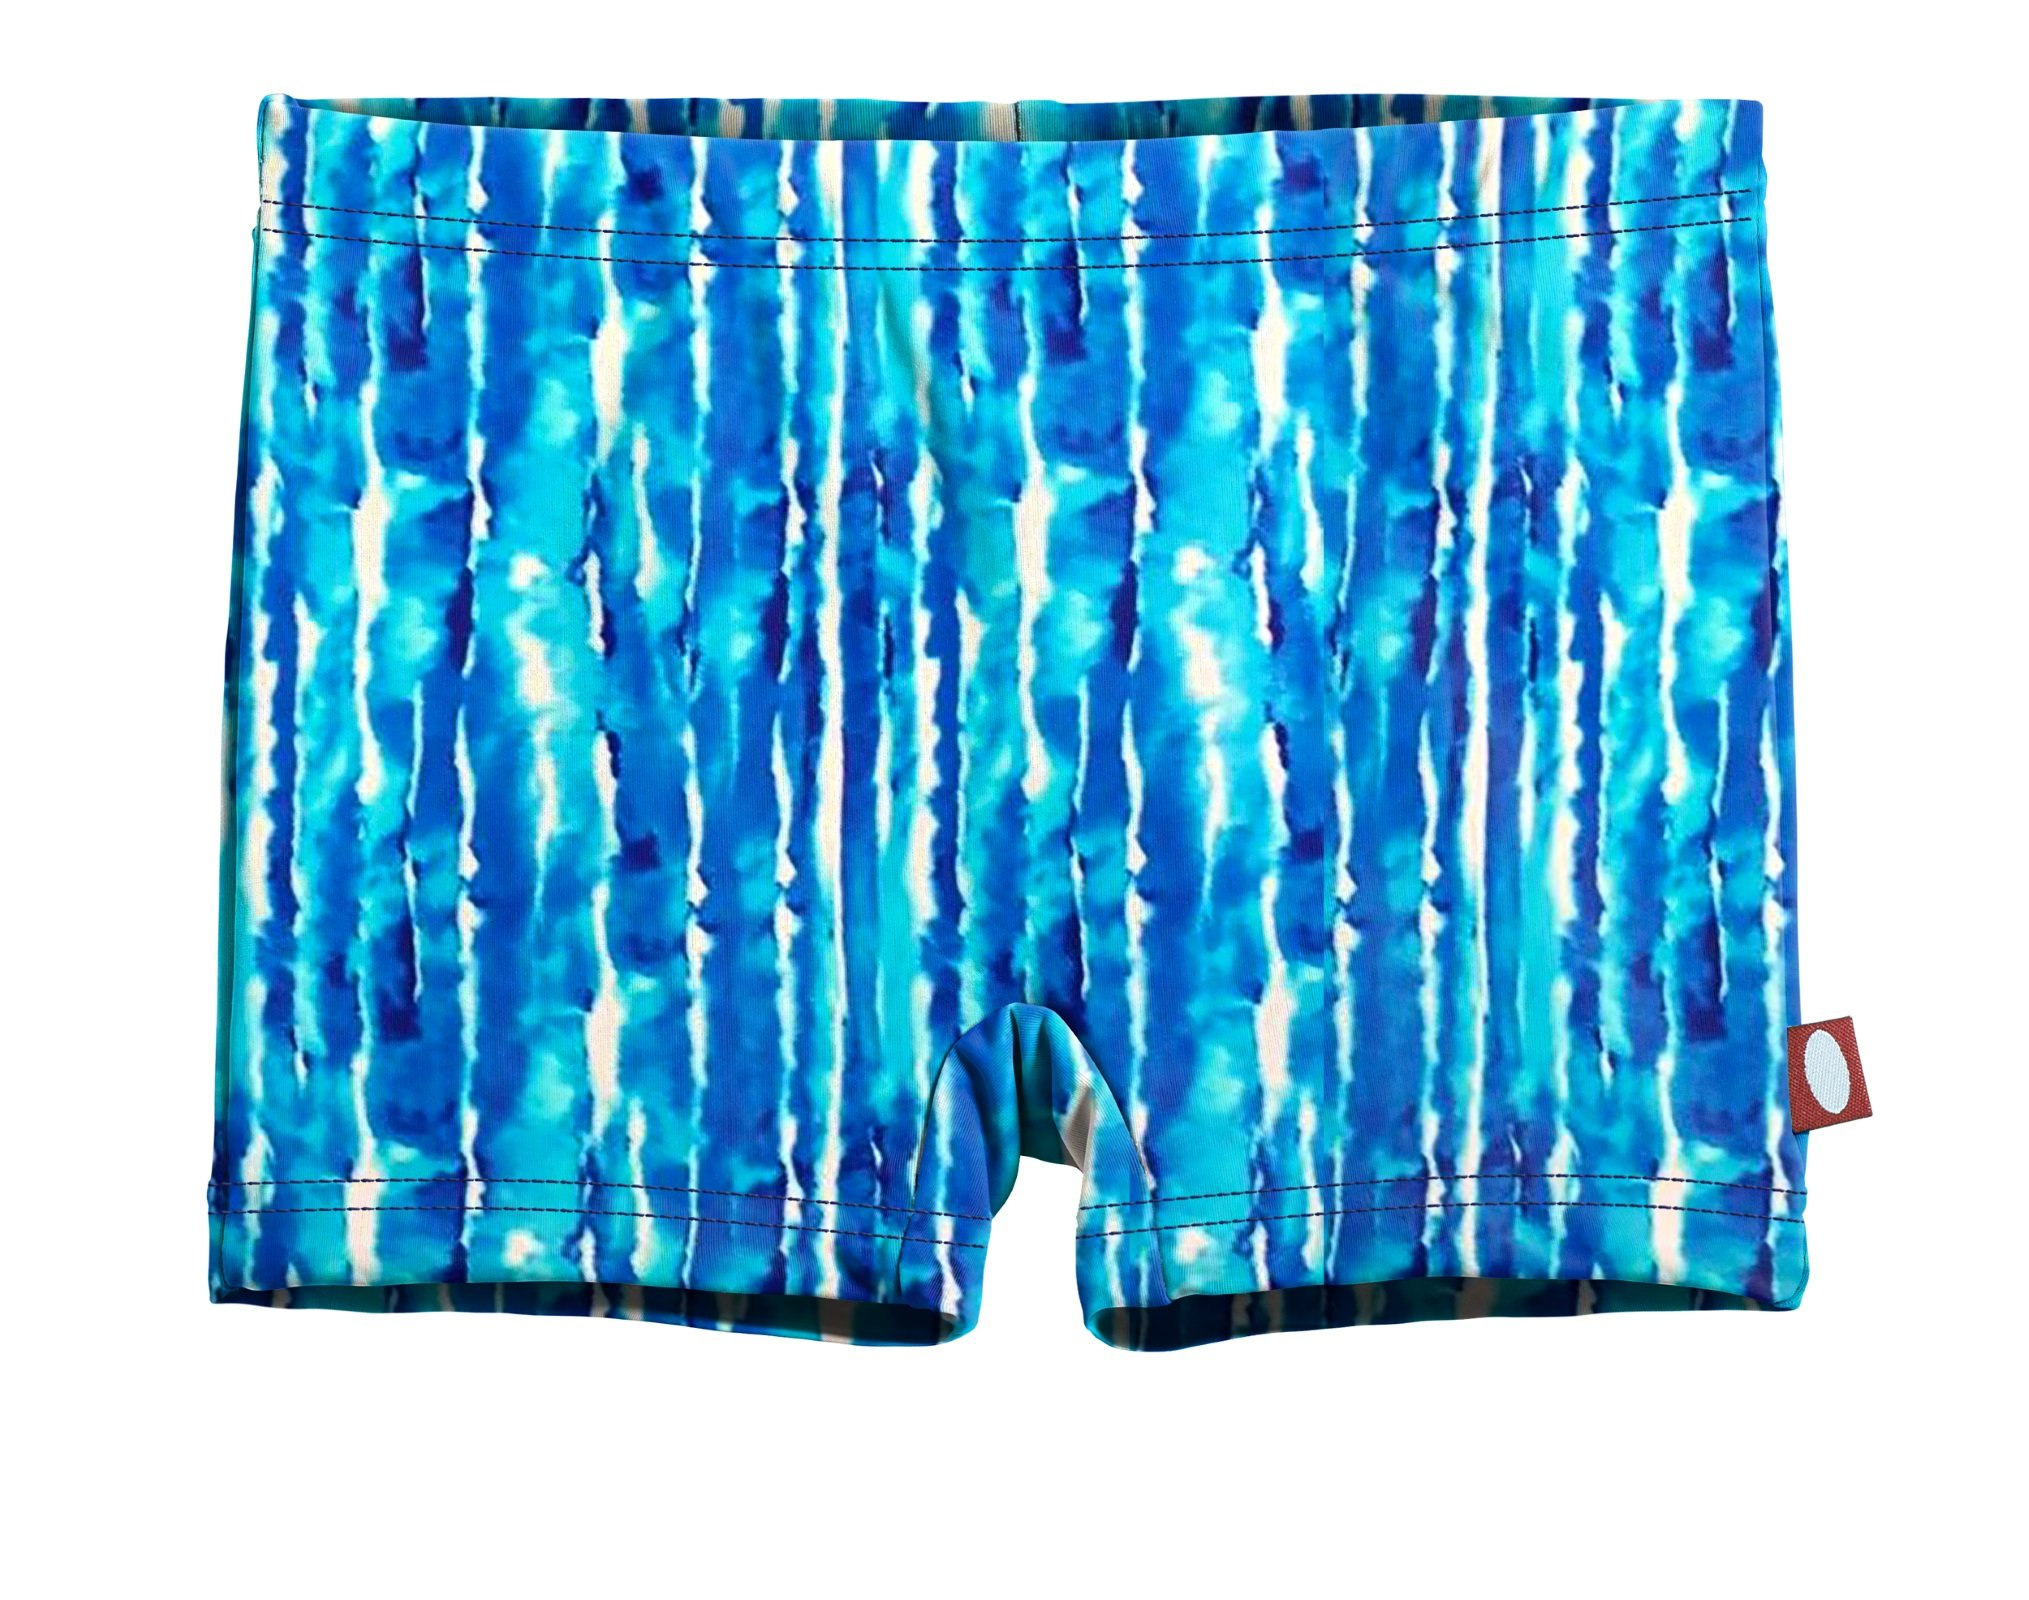 City Threads Girls' Swimming Suit Bottom Boy Short, Water Tie-Dye, 16 by City Threads (Image #1)